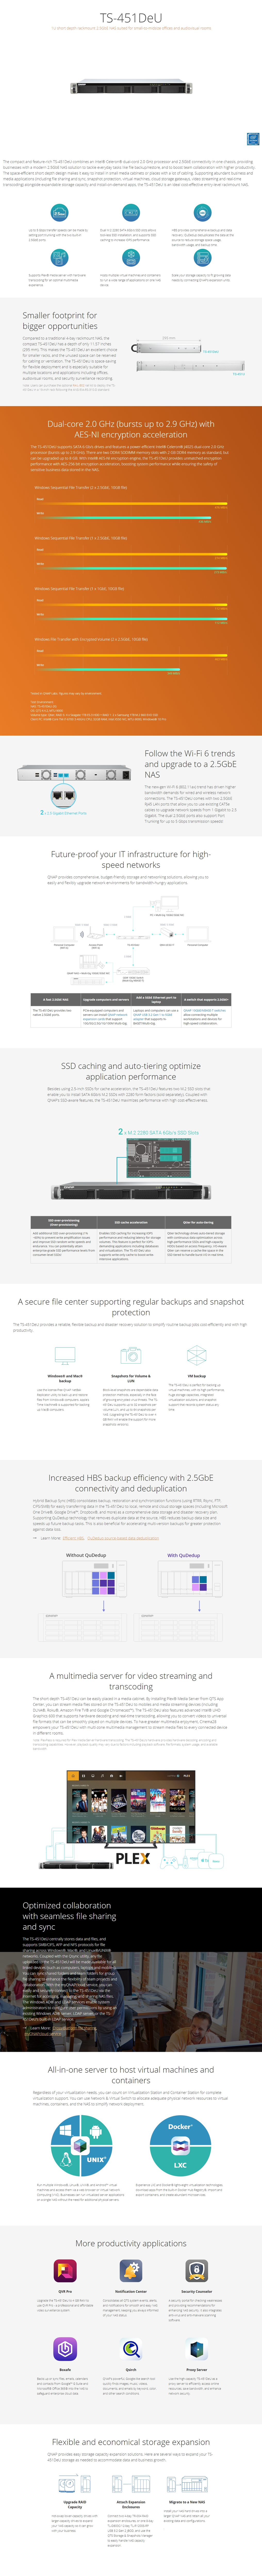 A large marketing image providing additional information about the product QNAP TS-451DeU 2.0Ghz 2GB 4 Bay Rackmount NAS Enclosure - Additional alt info not provided